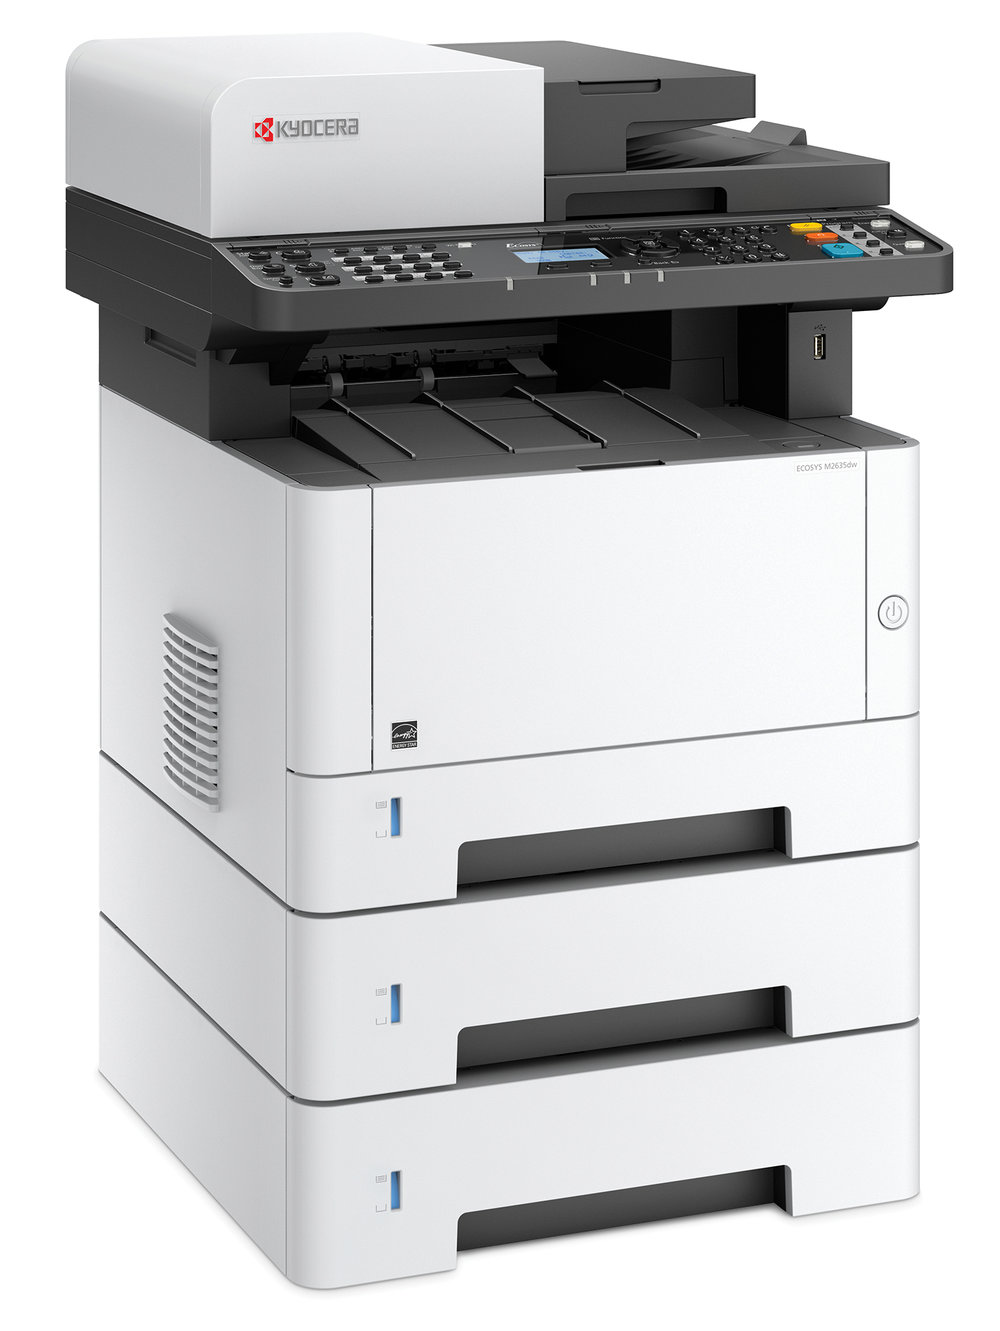 The Ecosys M2635dw with x 2 optional 250 sheet cassettes